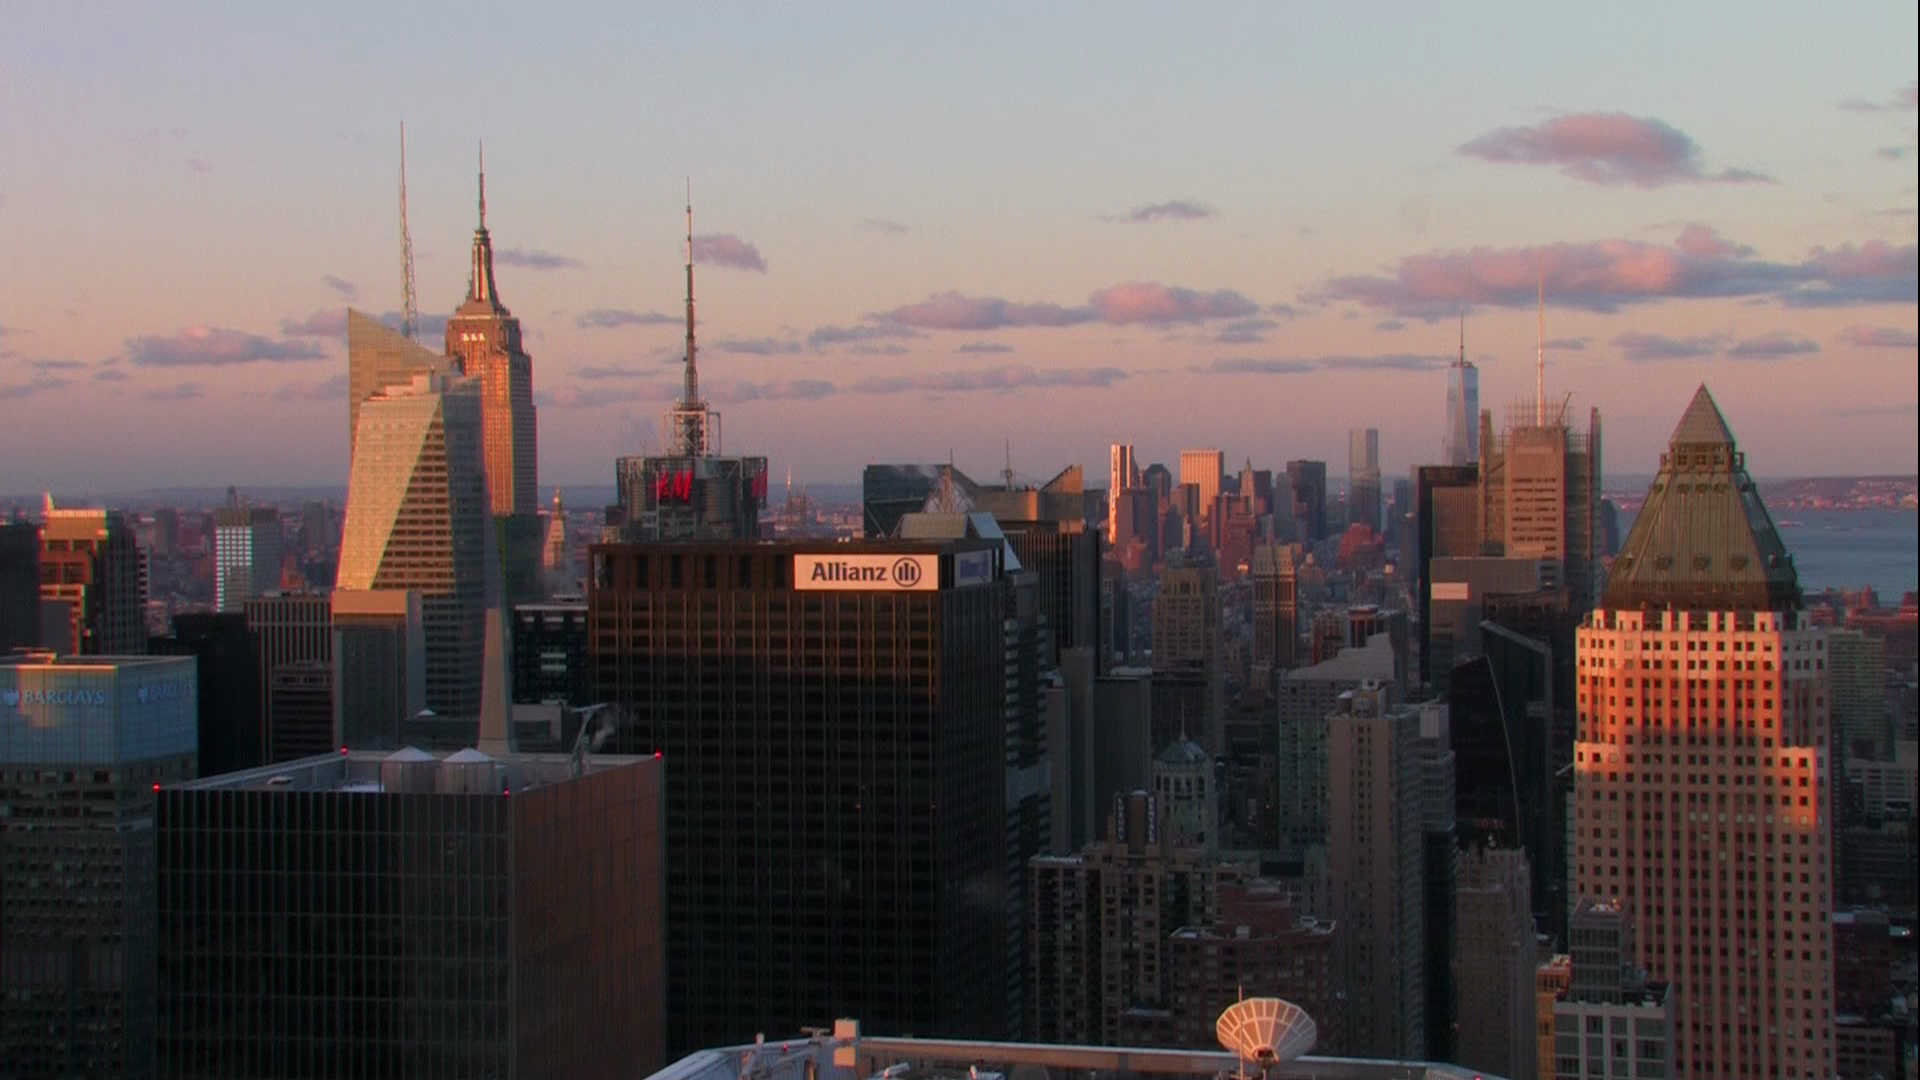 Twitter / ChrisCuomo: Another #NewDay dawns. Beautiful, ...